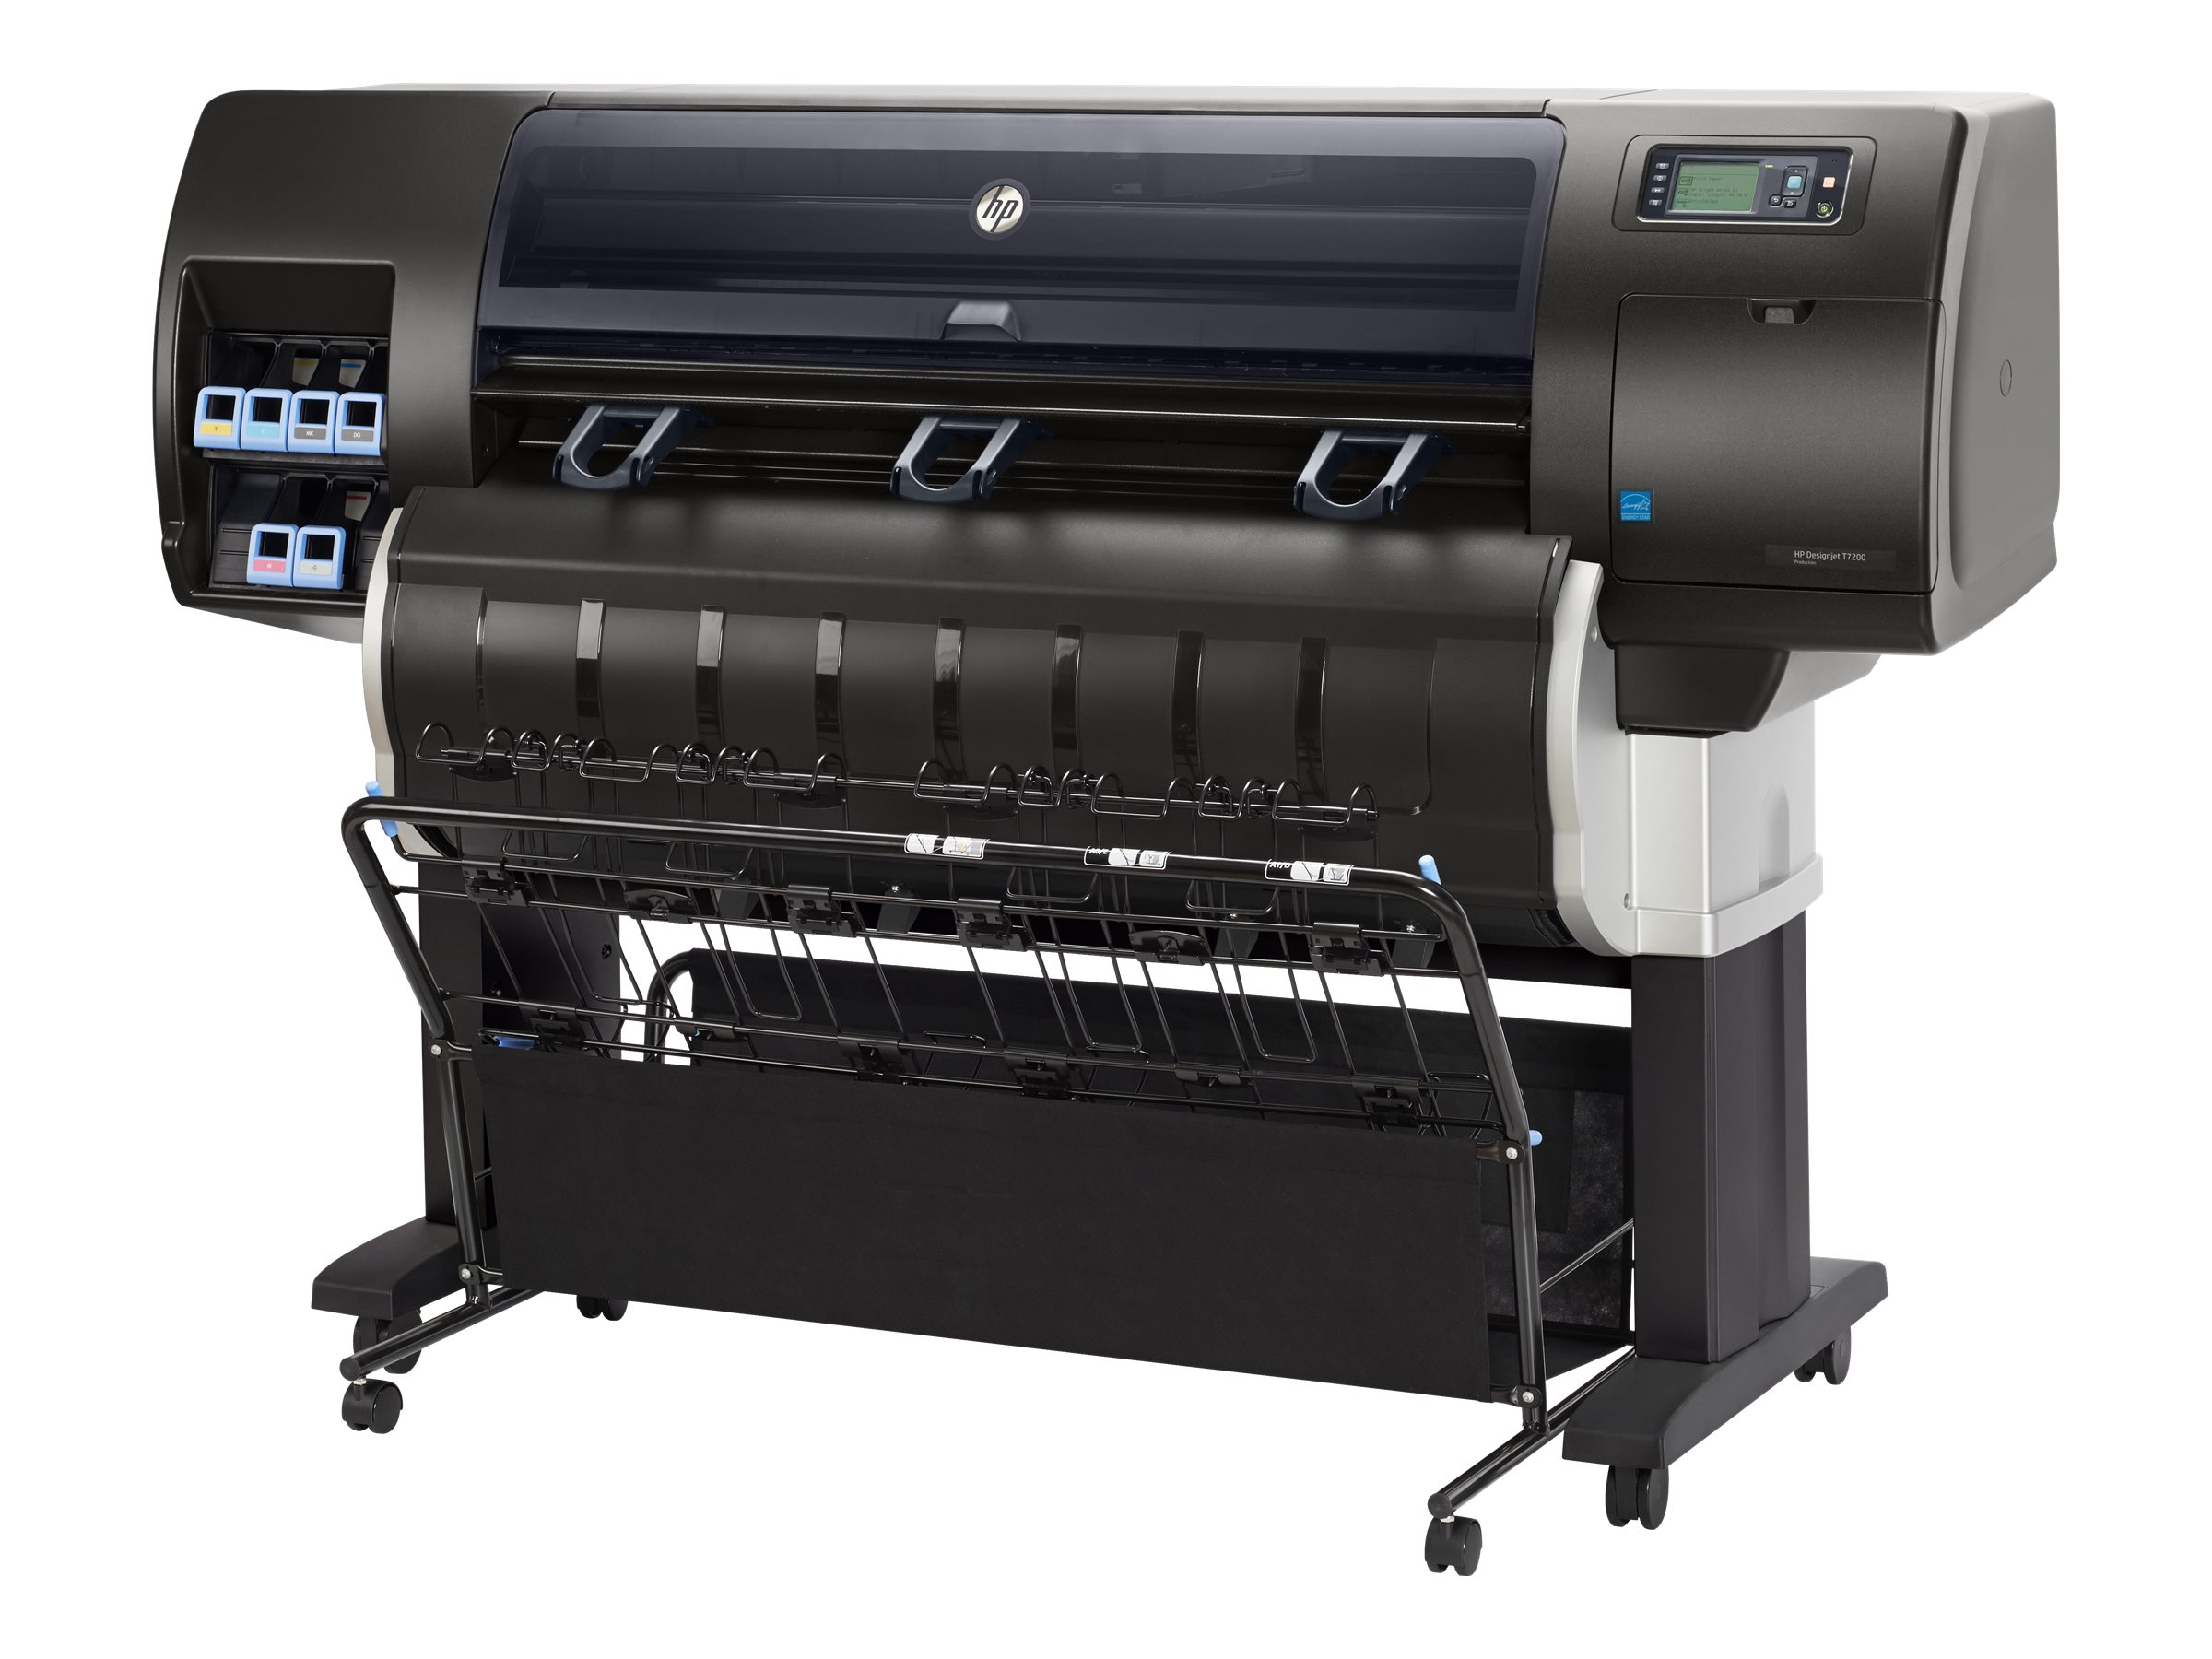 HP Designjet T7200 Production Printer